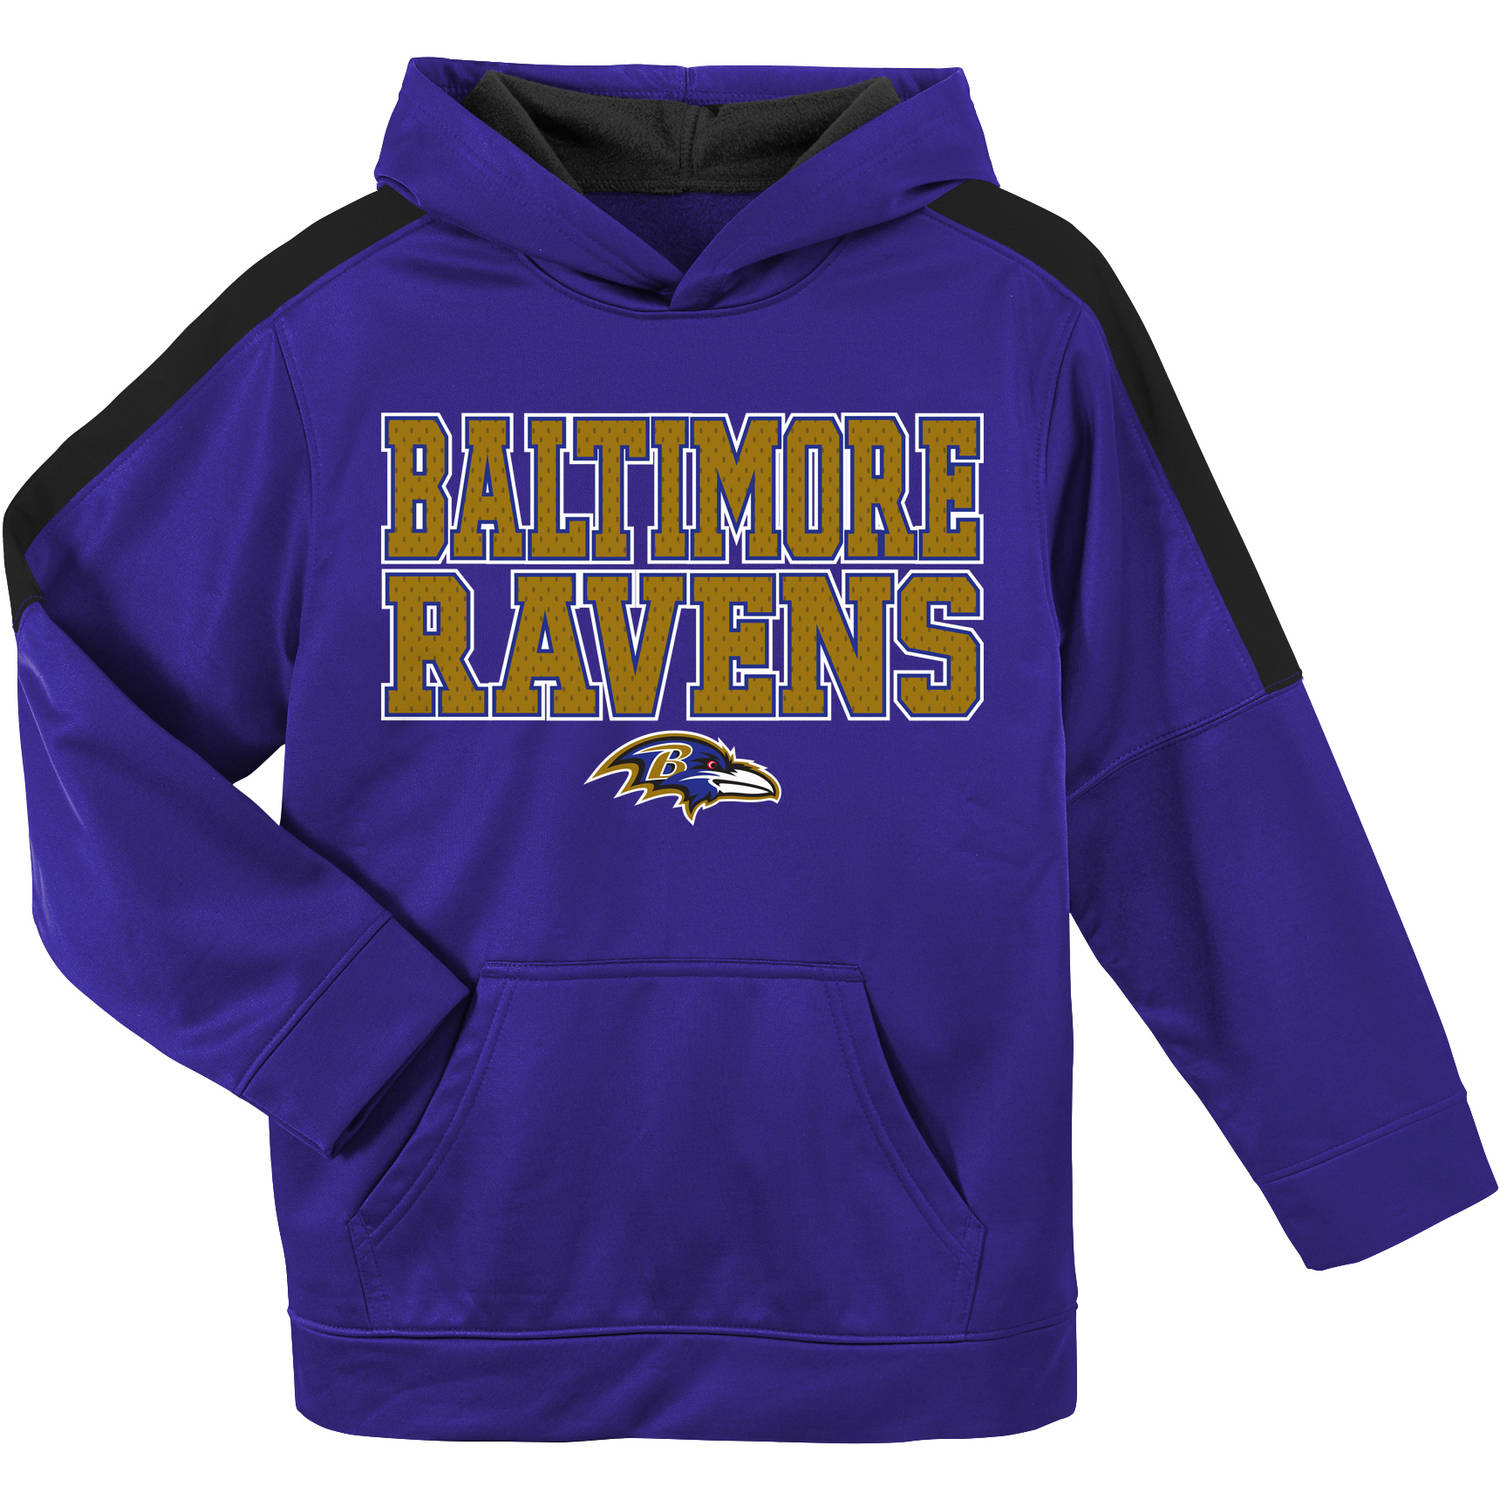 NFL Baltimore Ravens Youth Hooded Fleece Top